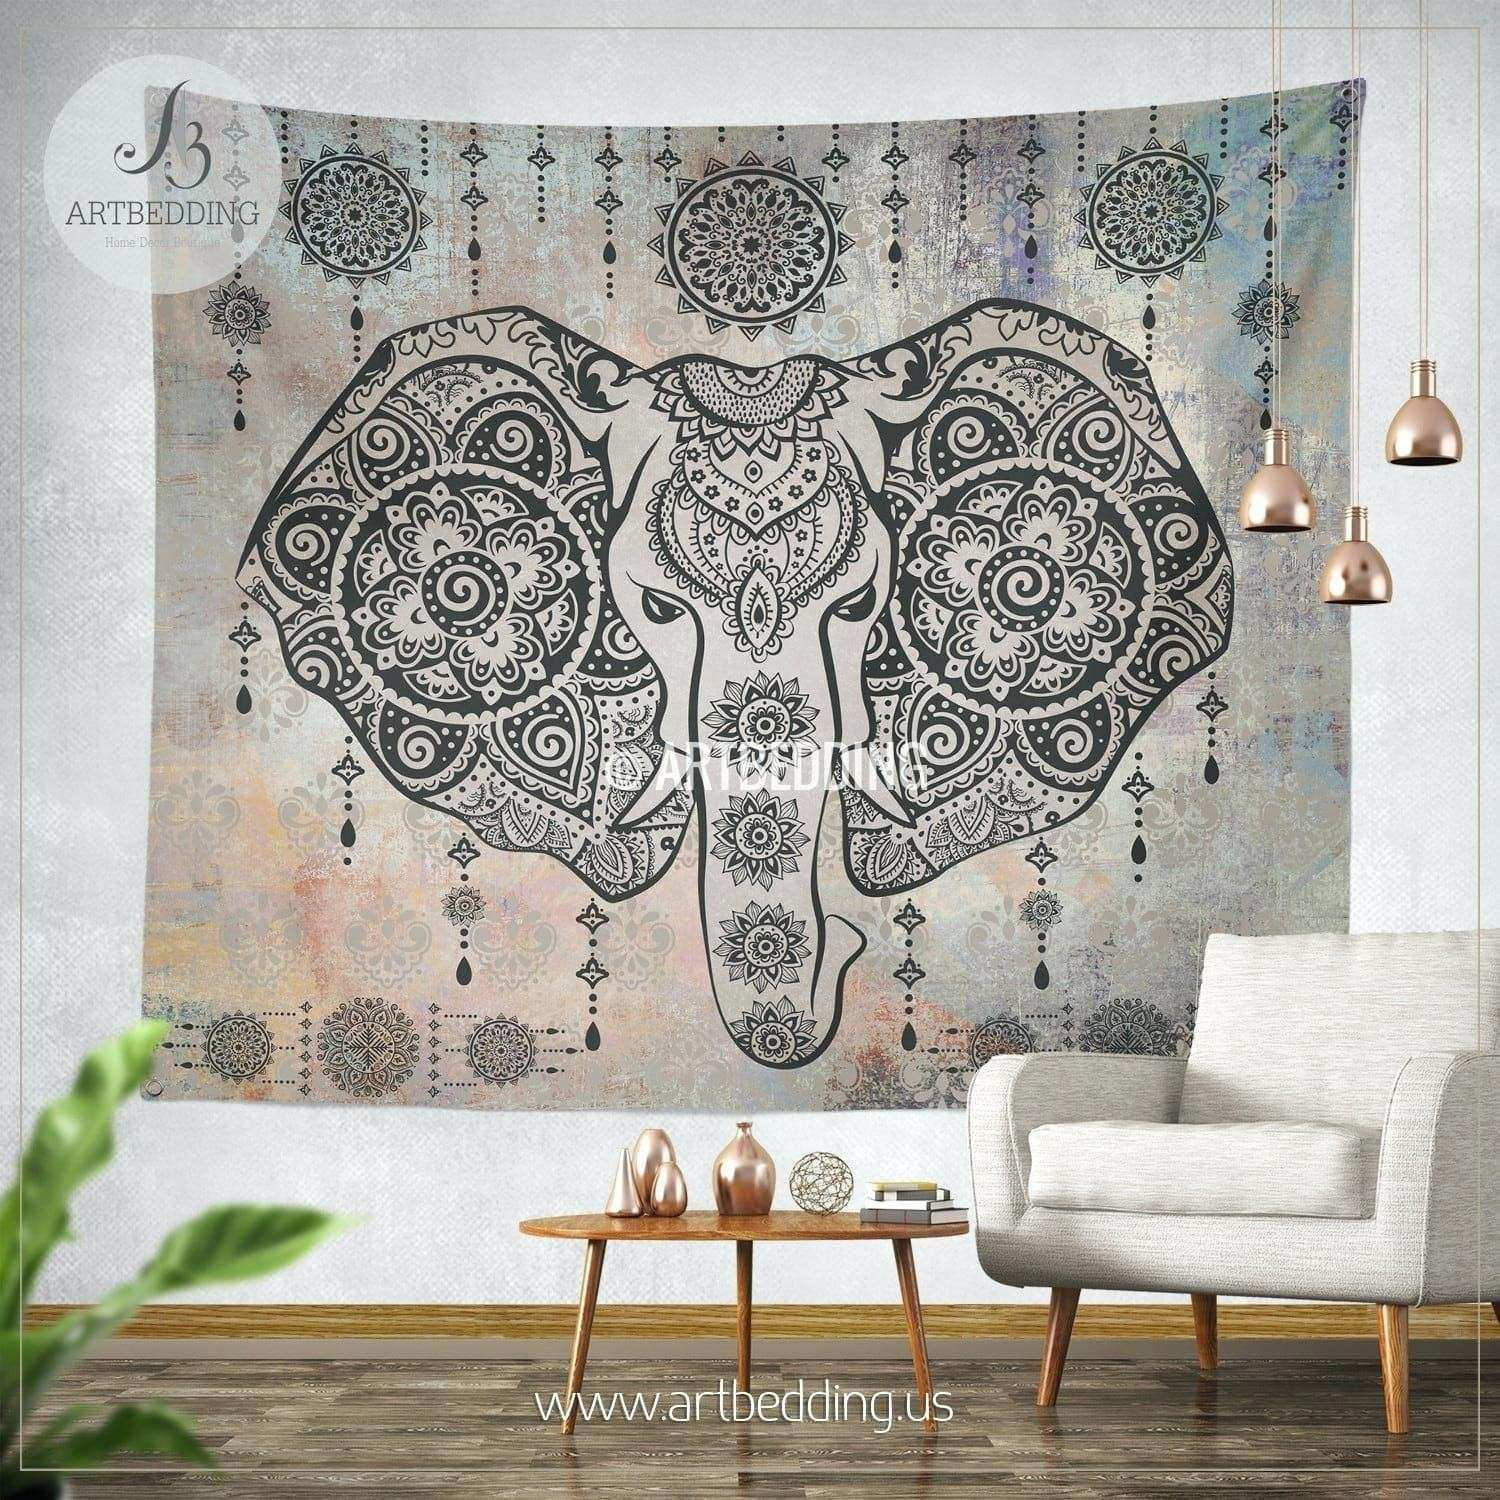 How To Hang Tapestry Esy Wll Wall Plaster Walls Without Nails